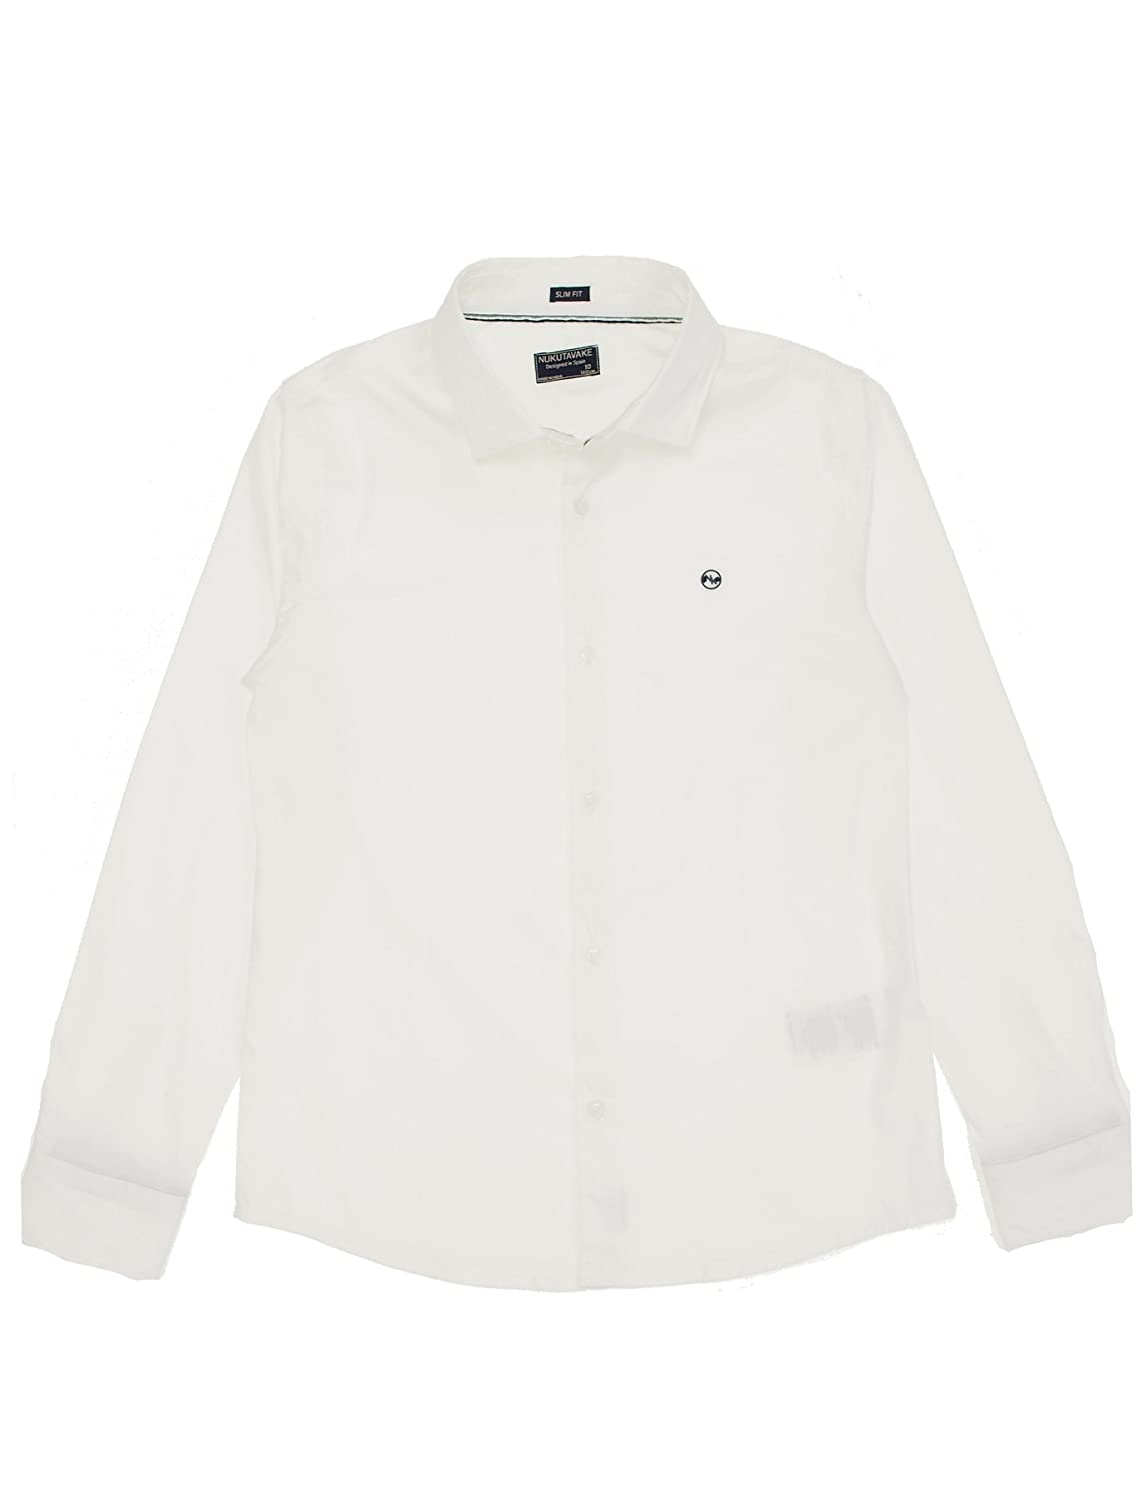 L//s Stretch Shirt for Boys White 6160 Mayoral